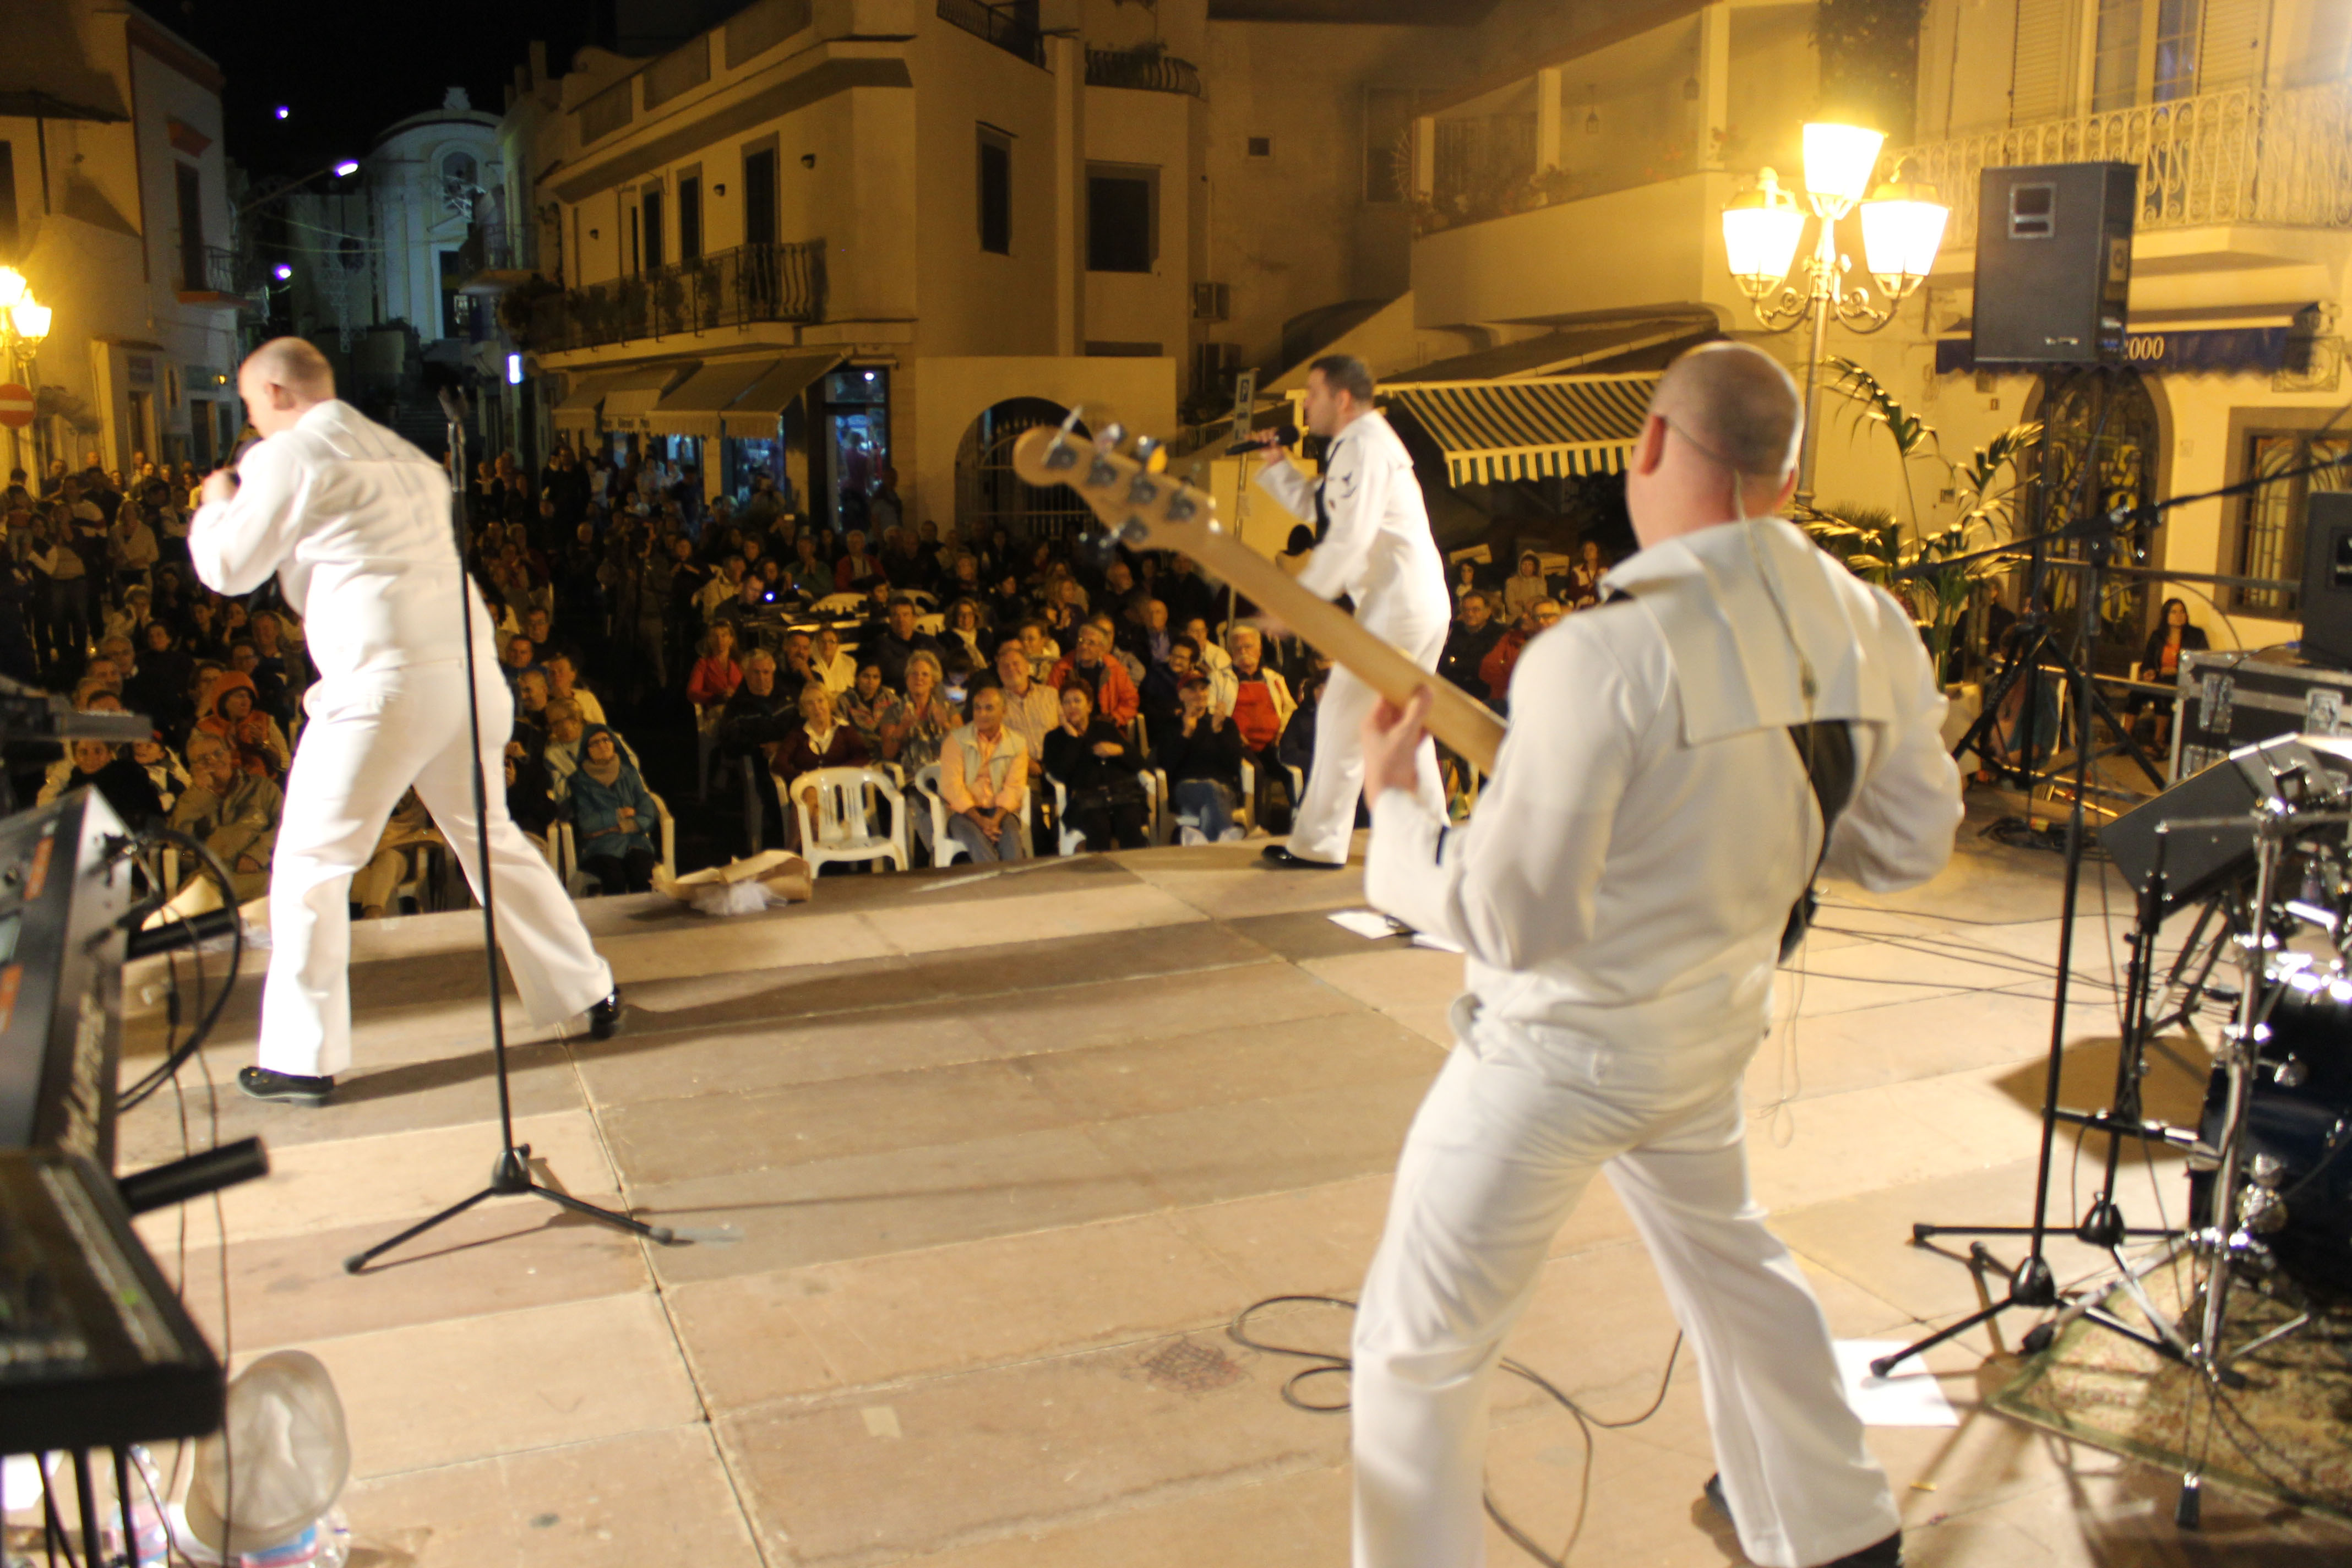 Sailors Assigned To The US Naval Forces Europe Band Perform At A Cultural Celebration In Panza